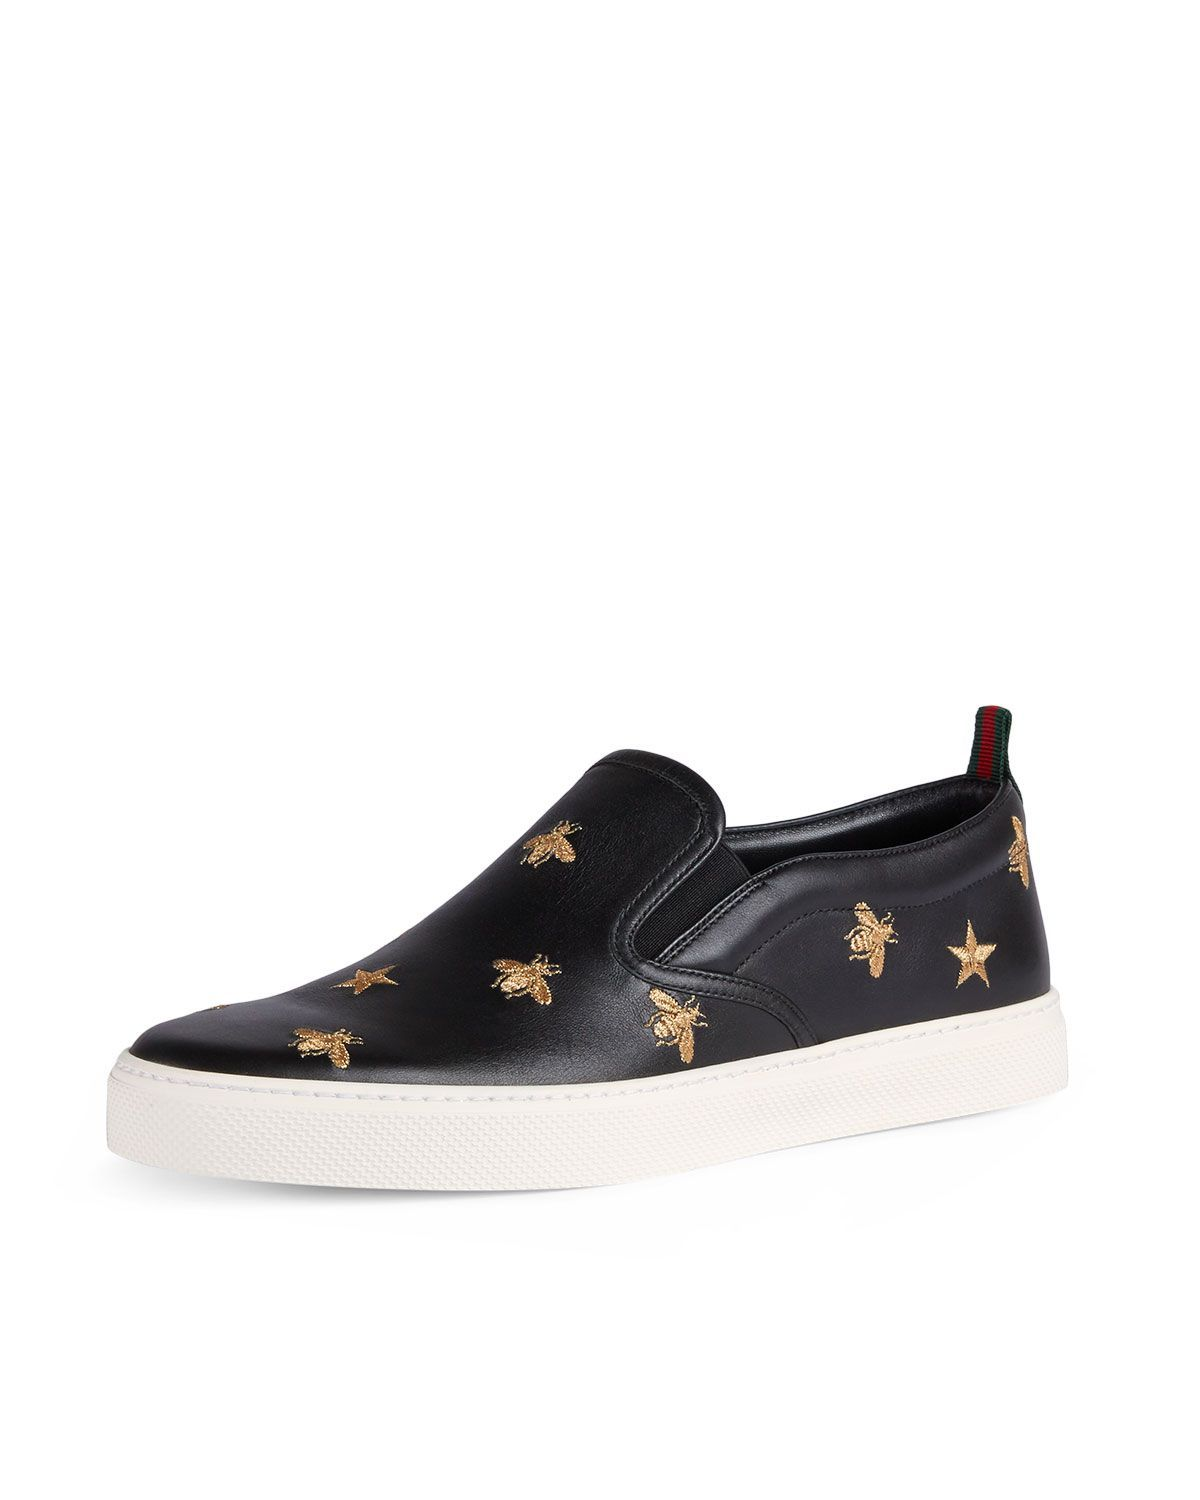 7711bb59777 Men s Dublin Bee   Star Embroidered Leather Slip-On Sneakers in 2019 ...